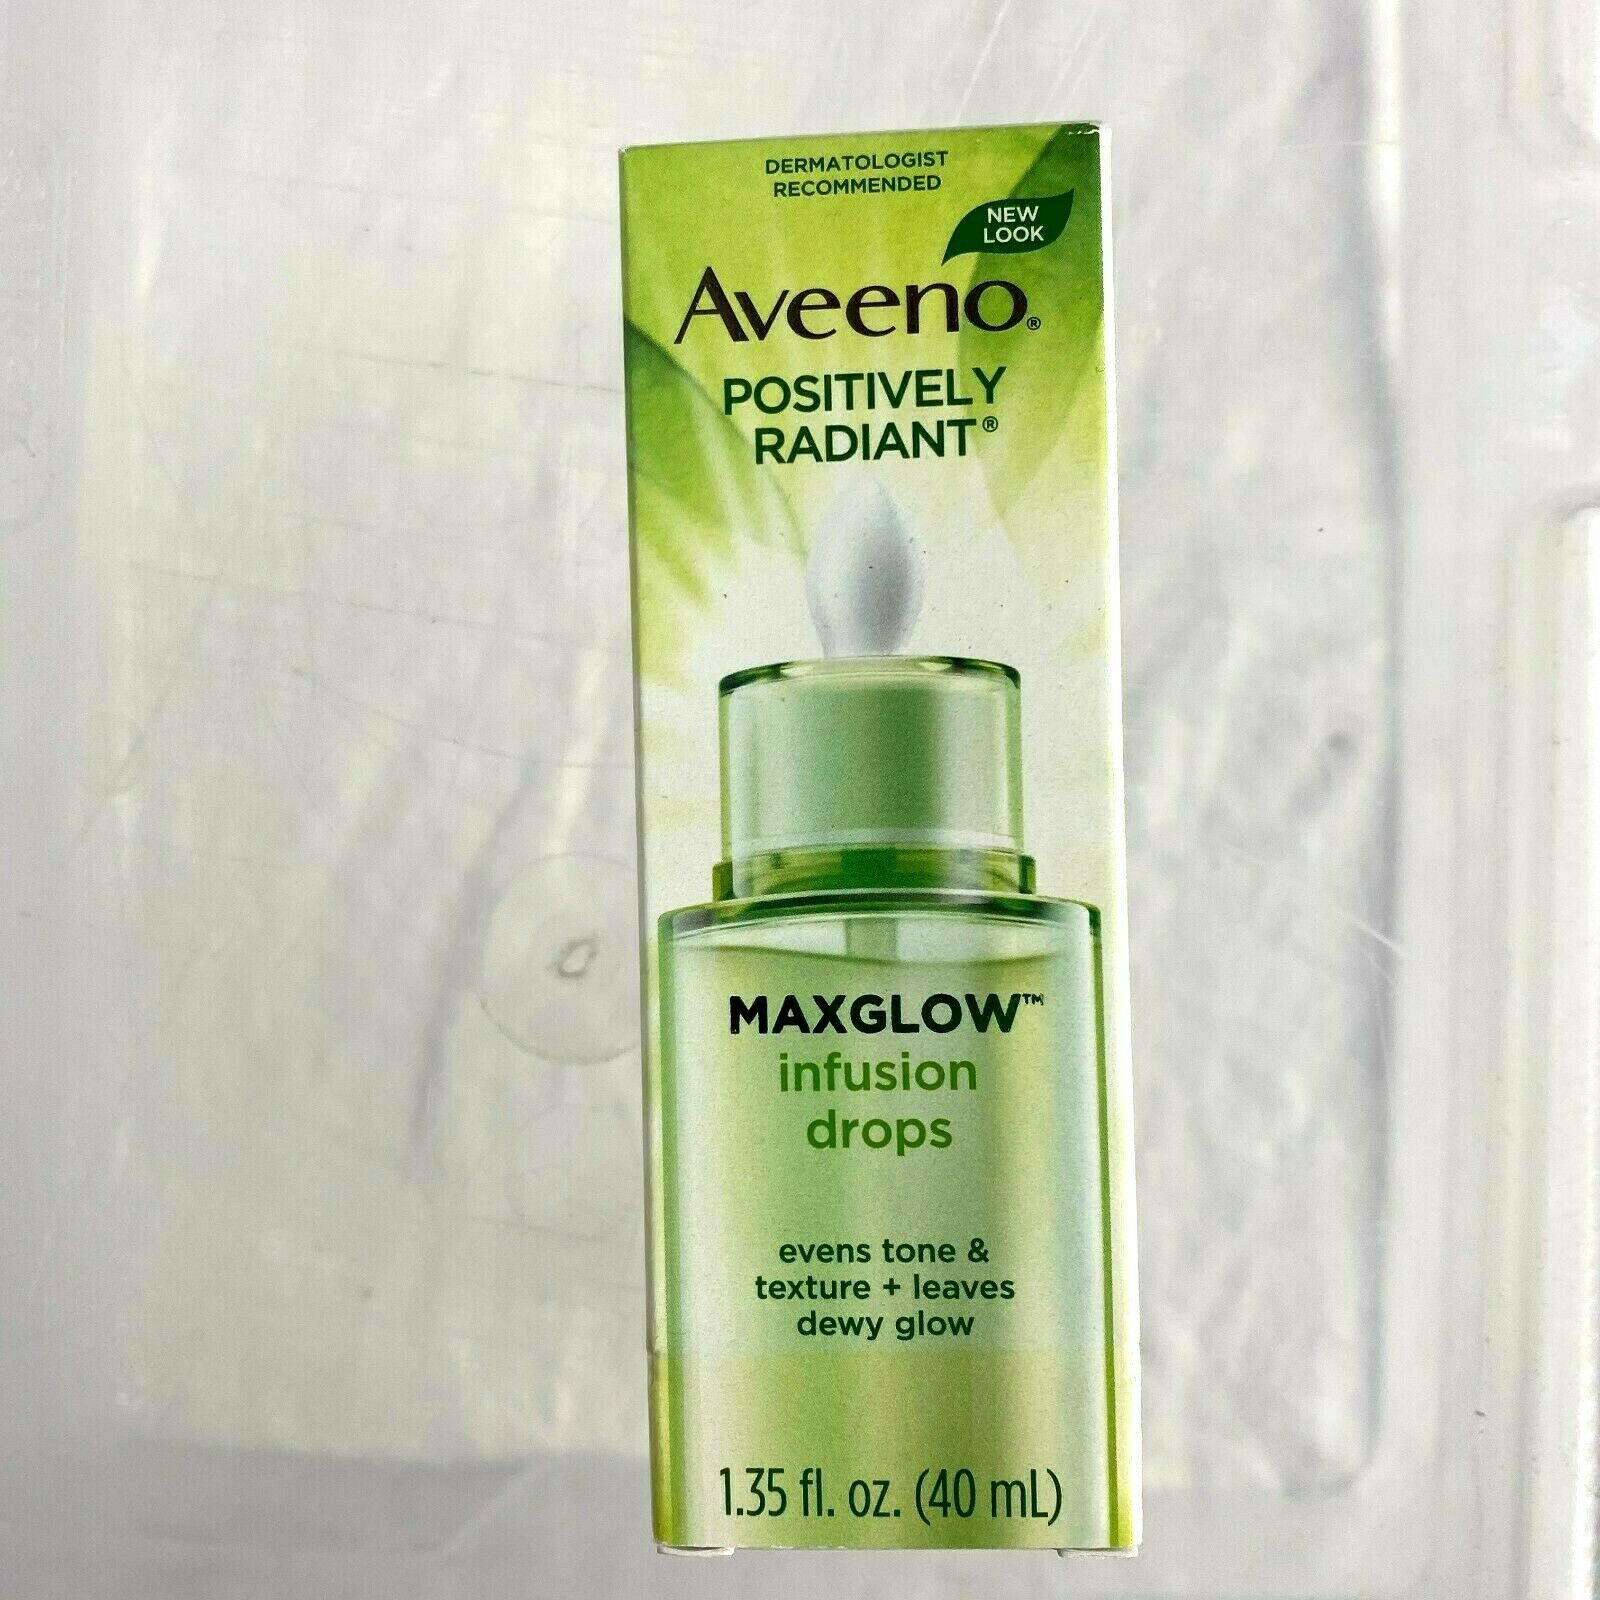 Primary image for Aveeno Positively Radiant Maxglow Infusion Drops Dropper Dispenser 1.35 fl. oz